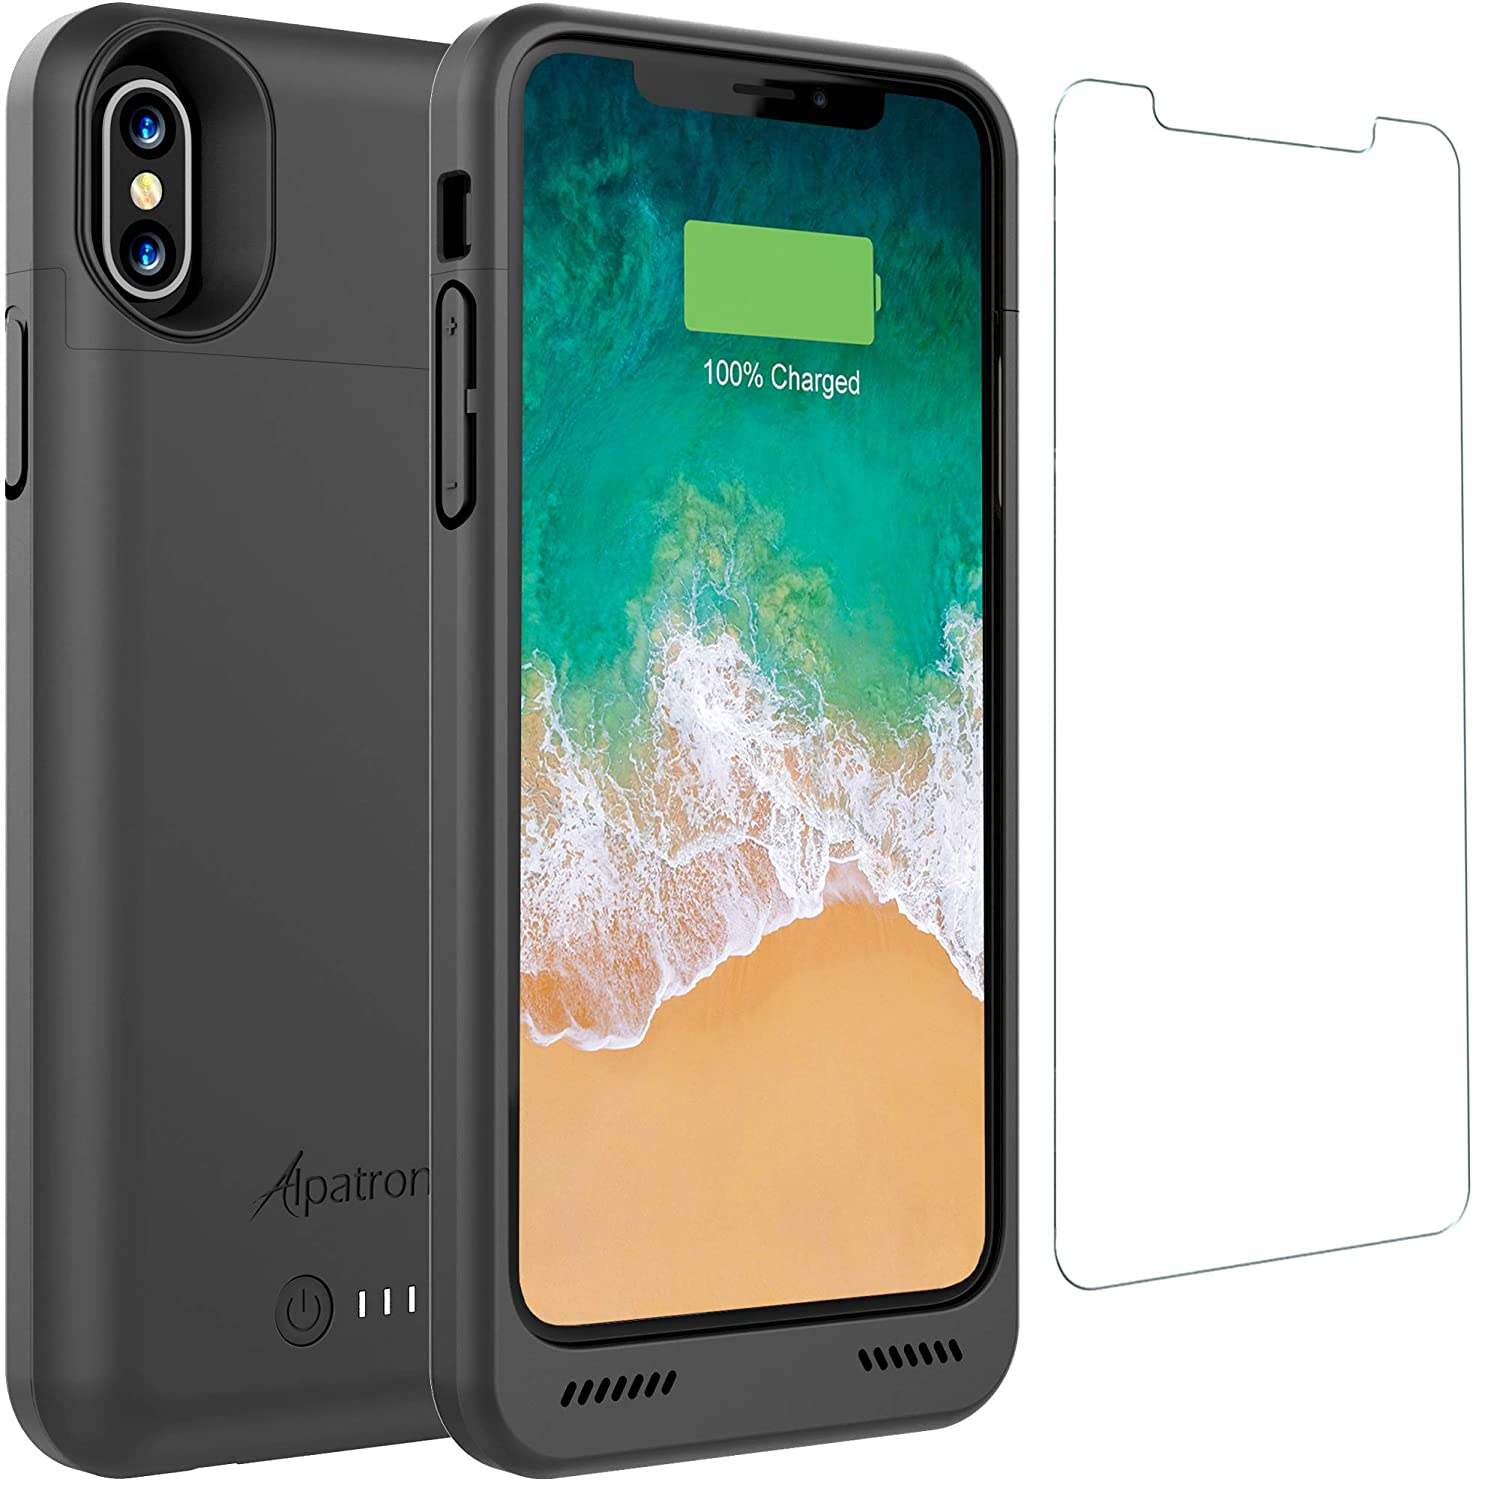 The Alpatronix iPhone X/XS Battery Case travel product recommended by Sara Skirboll on Lifney.